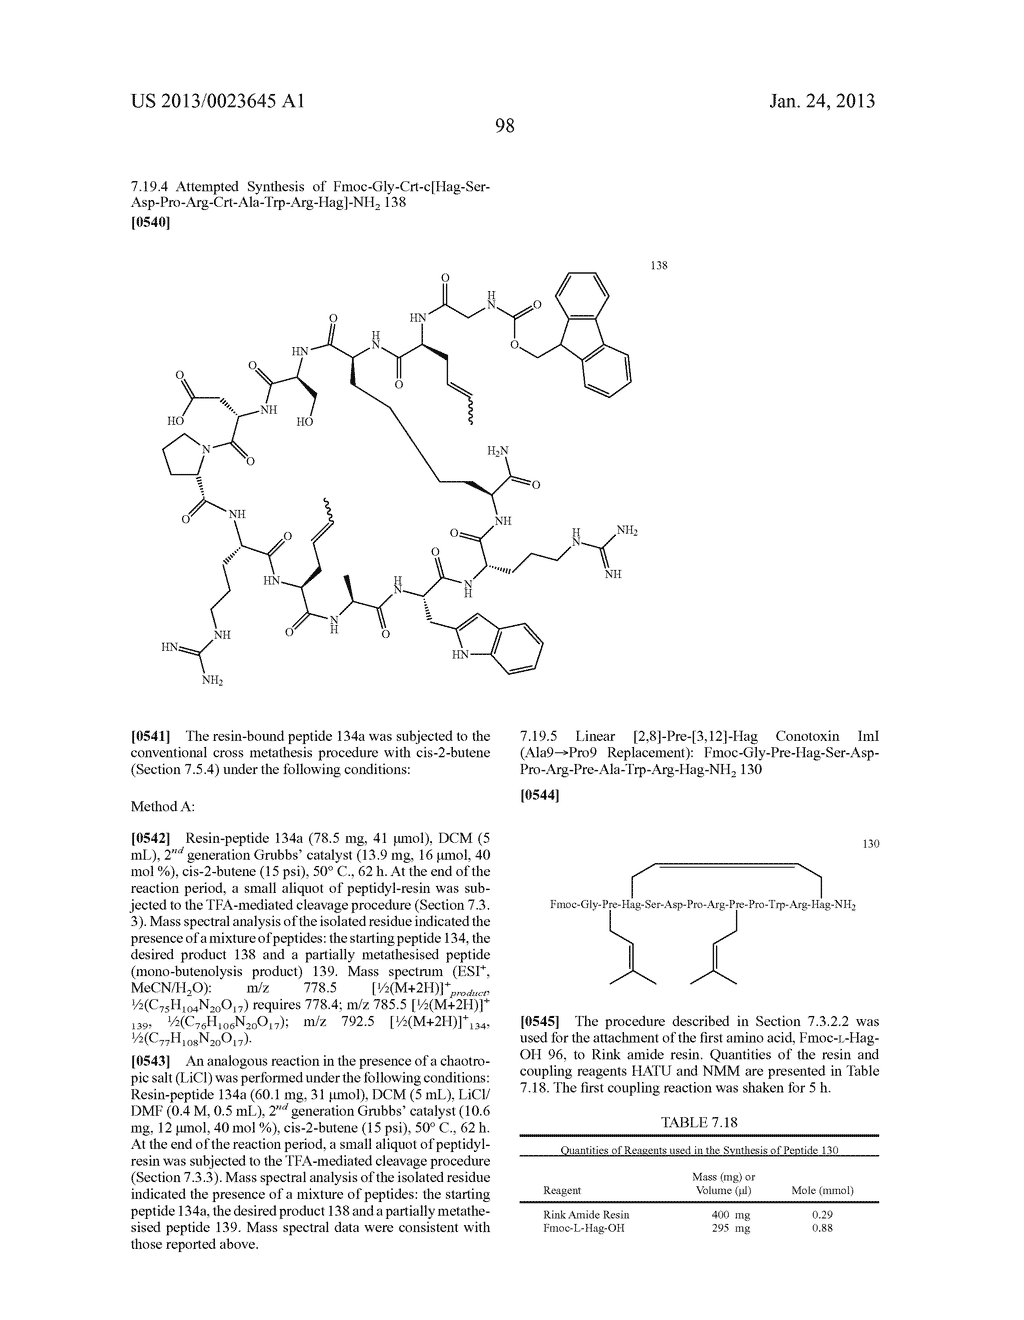 METHODS FOR THE SYNTHESIS OF DICARBA BRIDGES IN ORGANIC COMPOUNDS - diagram, schematic, and image 103